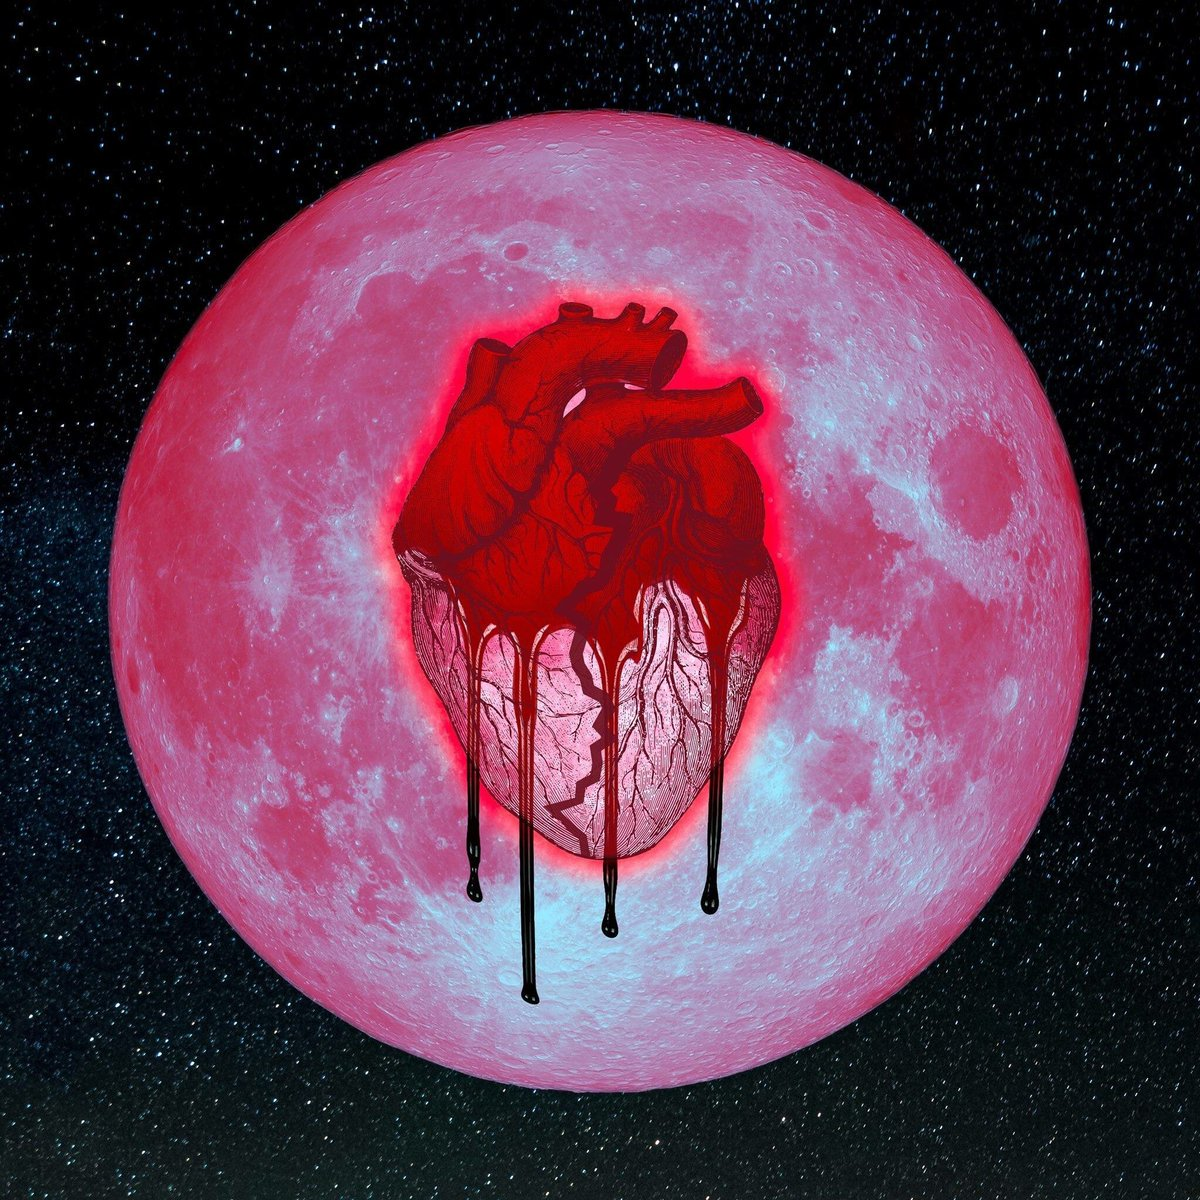 Stream #HeartbreakOnAFullMoon on @Spotify now! https://t.co/DSgT1oHFQG https://t.co/T5GlRcy2Ti